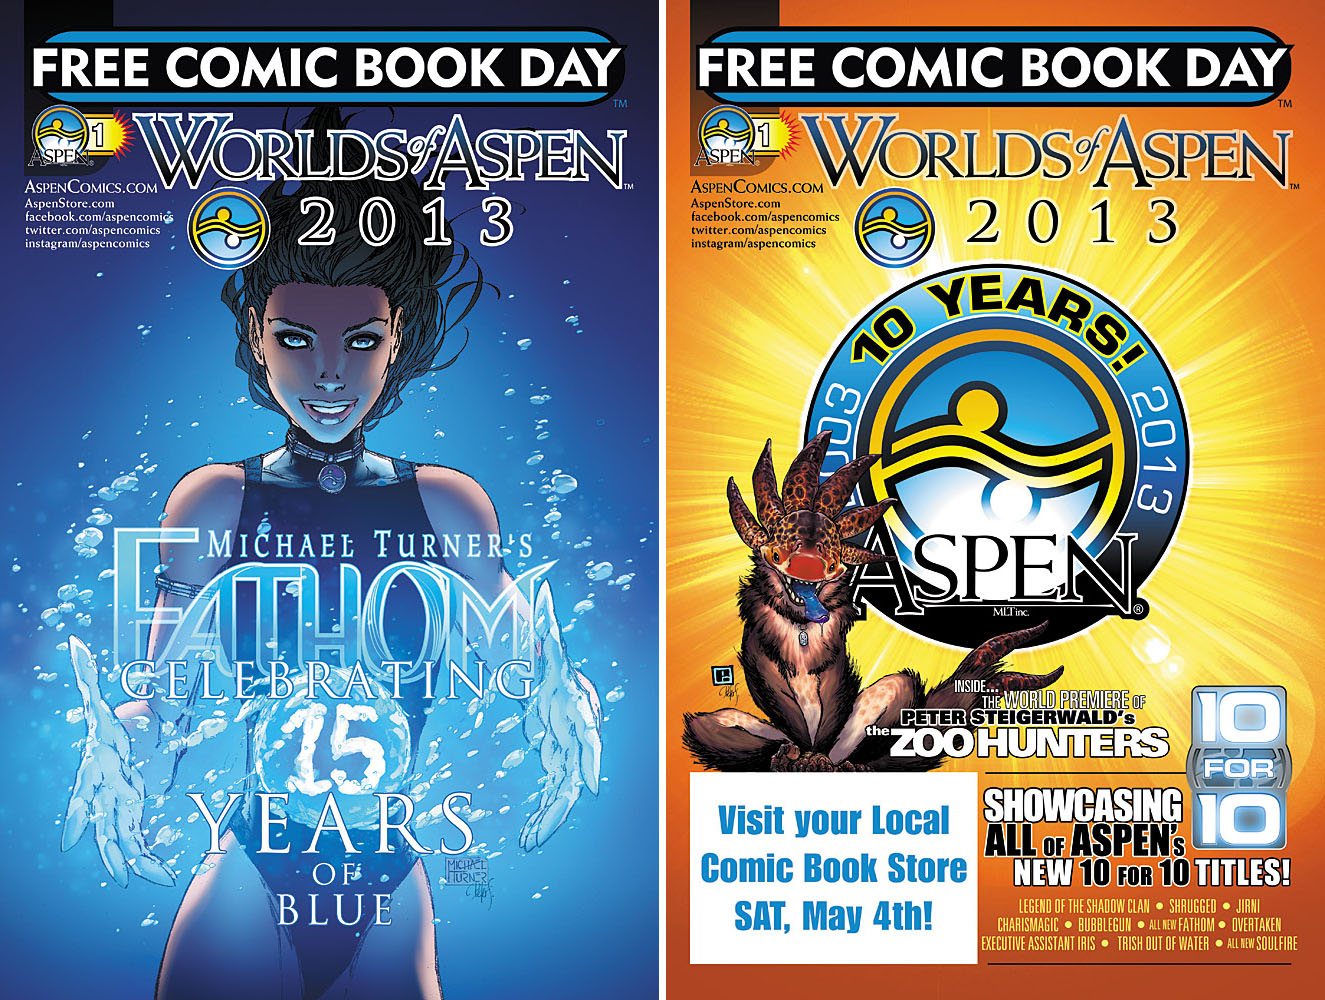 Aspen Comics Reveals Free Comic Book Day Schedule of Events